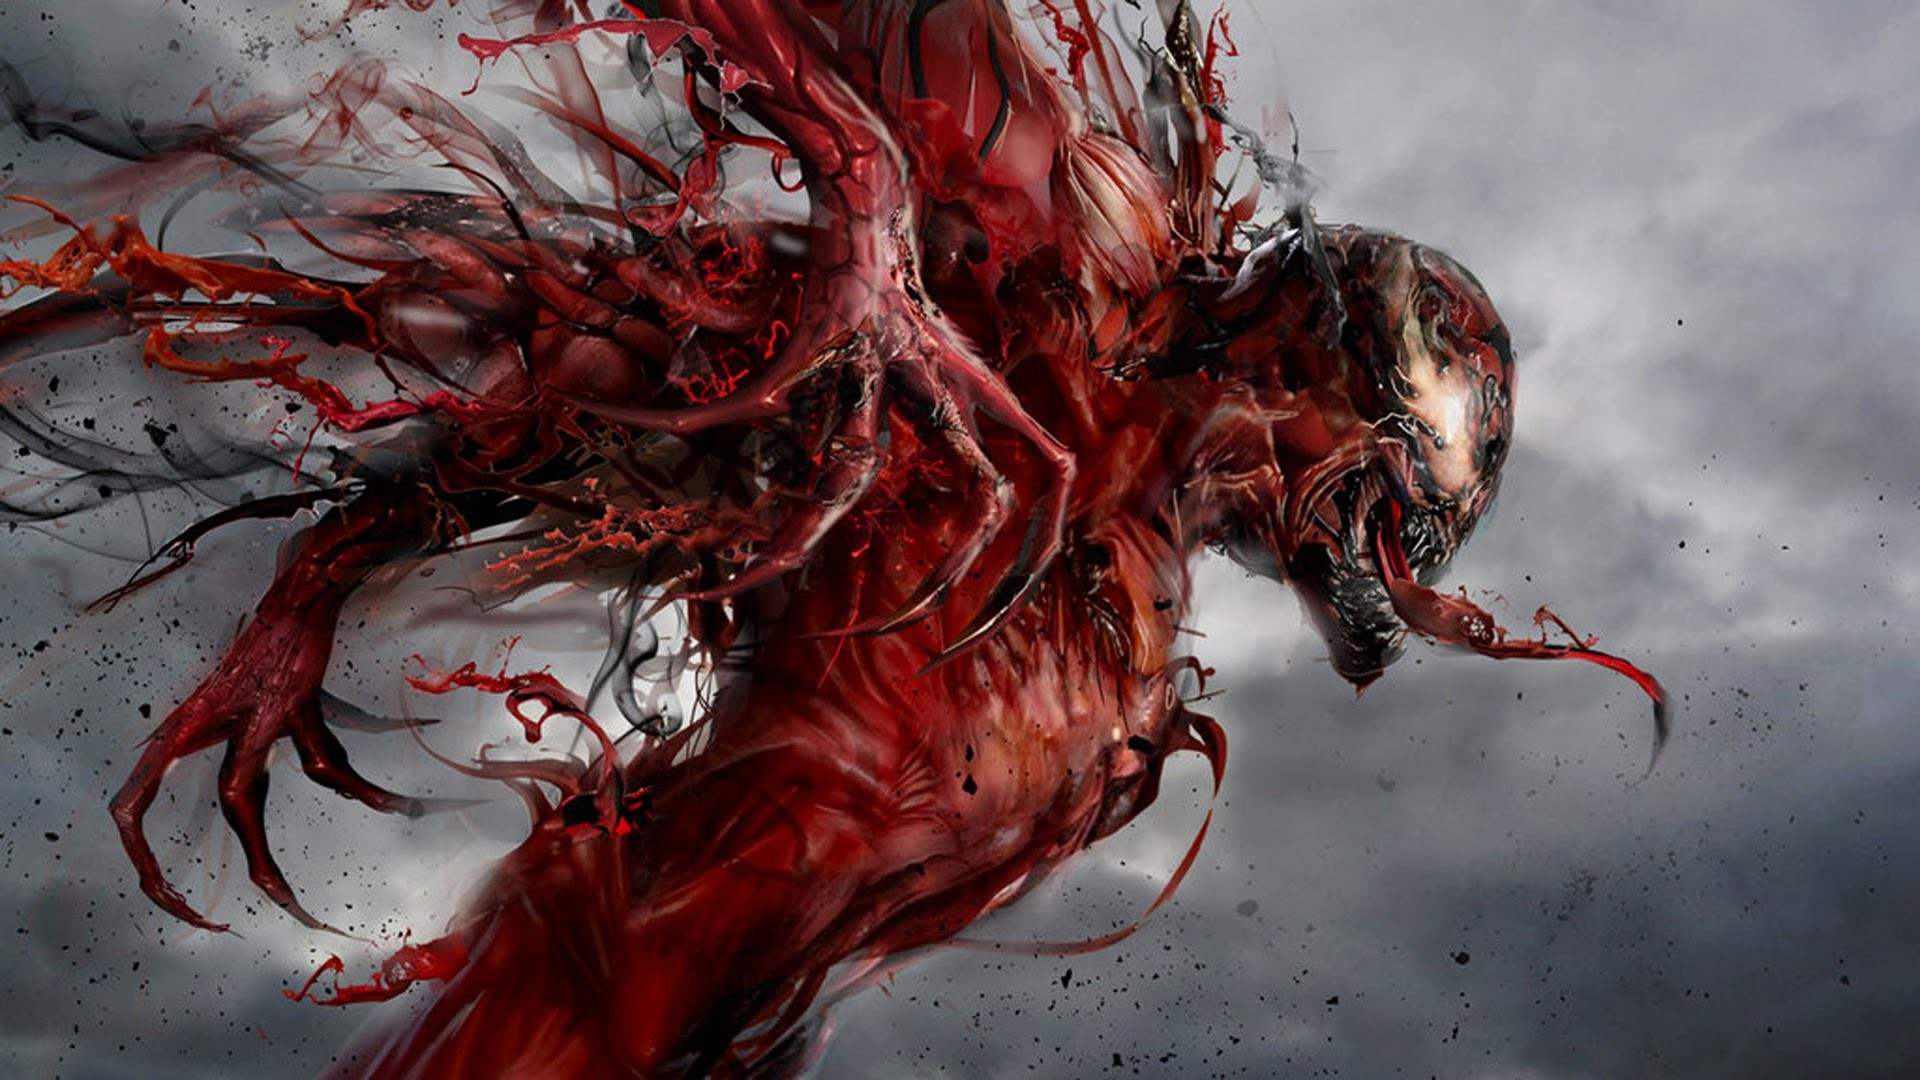 carnage wallpaper hd 71 images